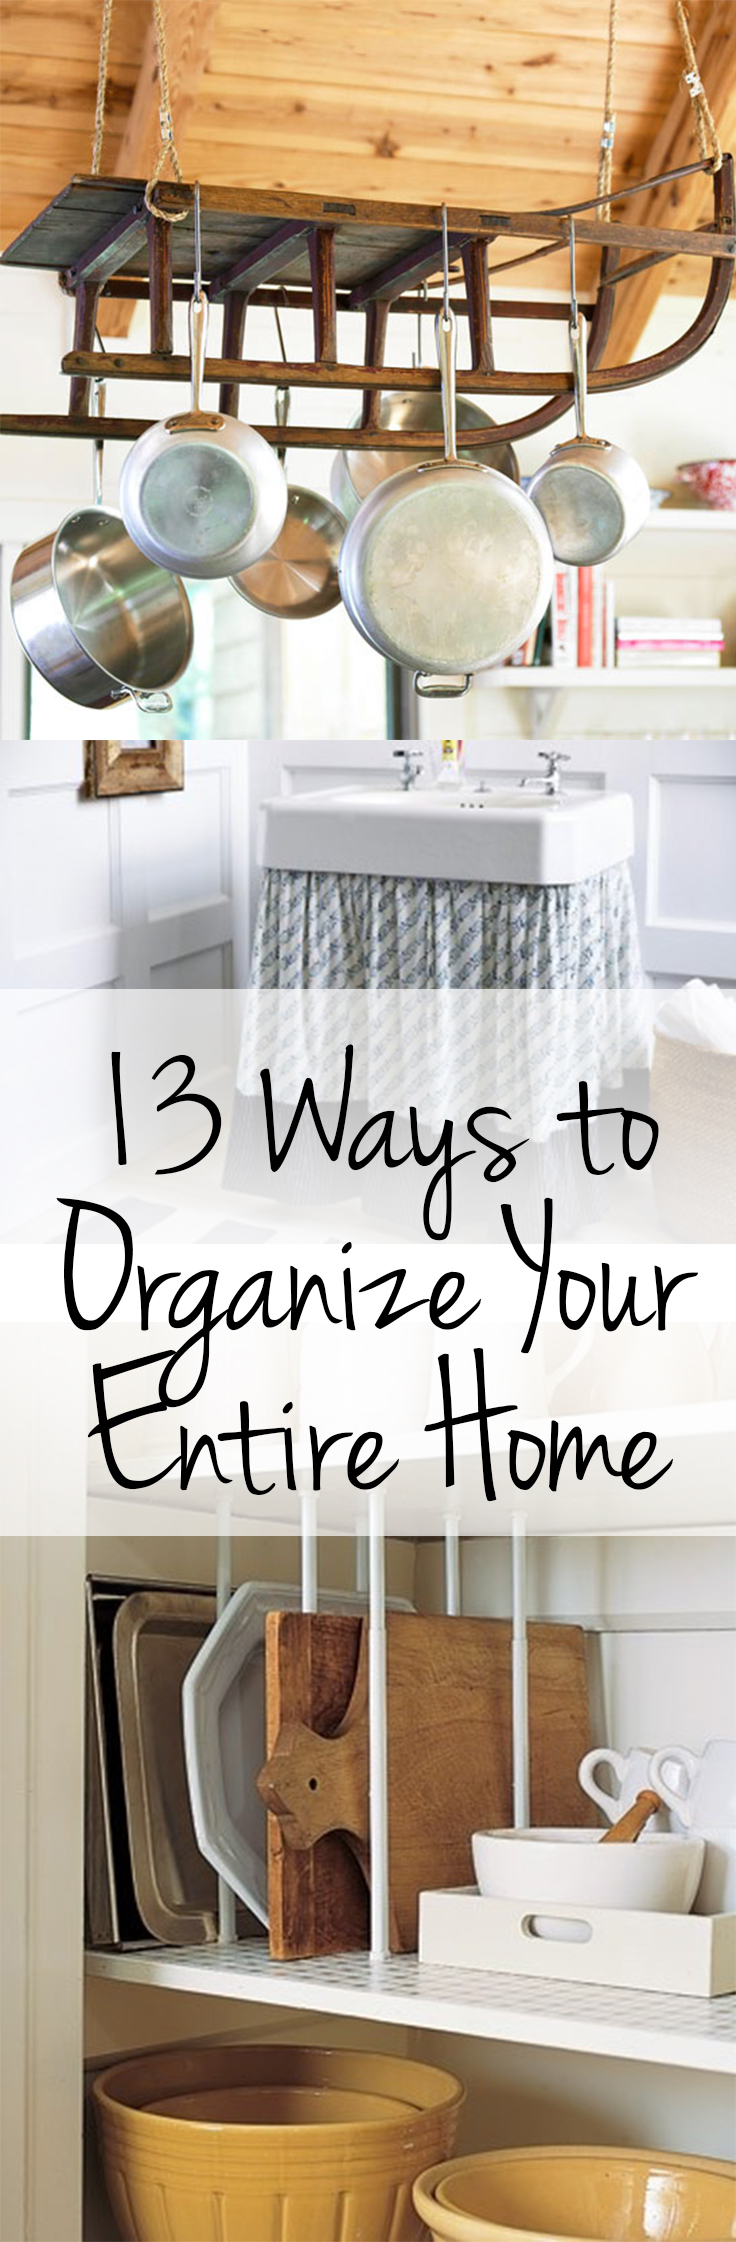 home organization, organized home, popular pin, clean home, home hacks, organization tips.